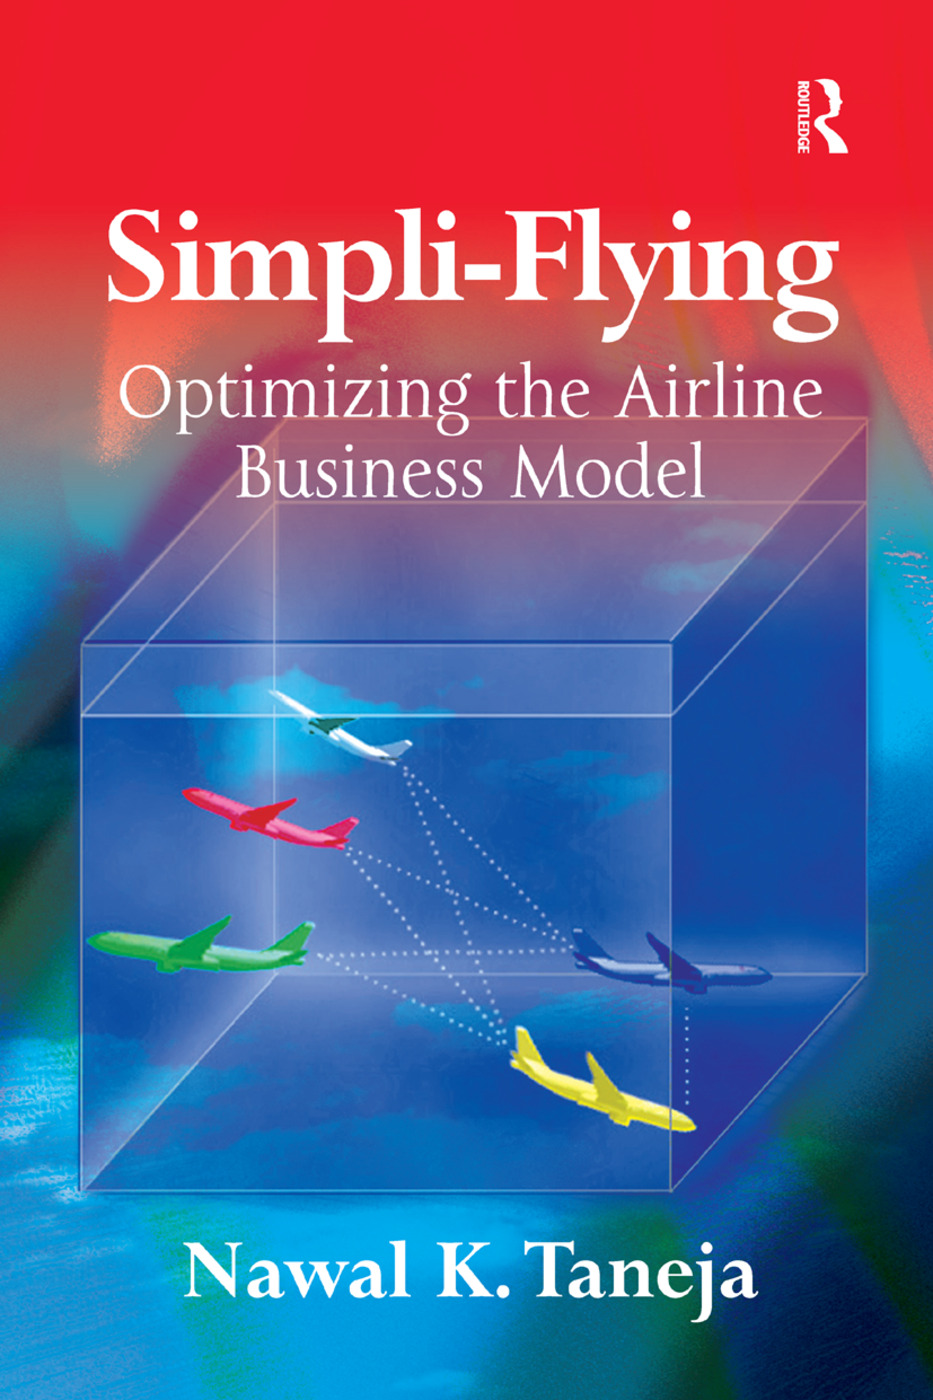 Simpli-Flying: Optimizing the Airline Business Model book cover